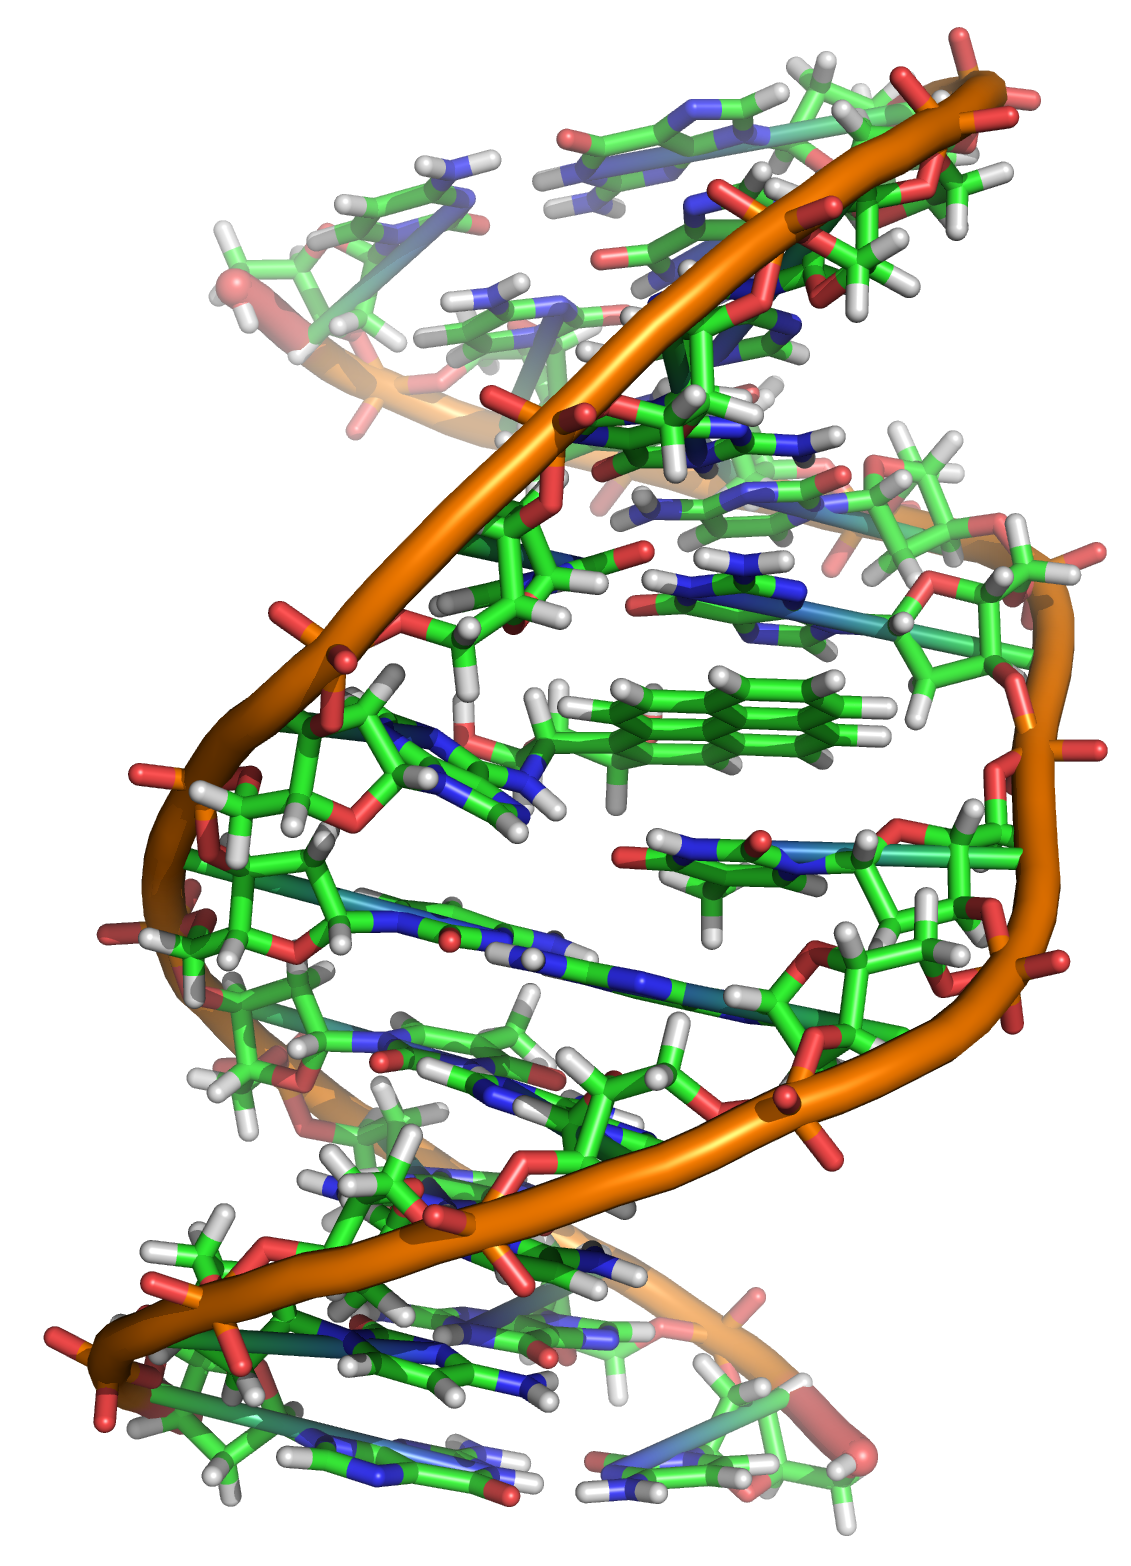 A covalent adduct between Xxxxy Syndrome